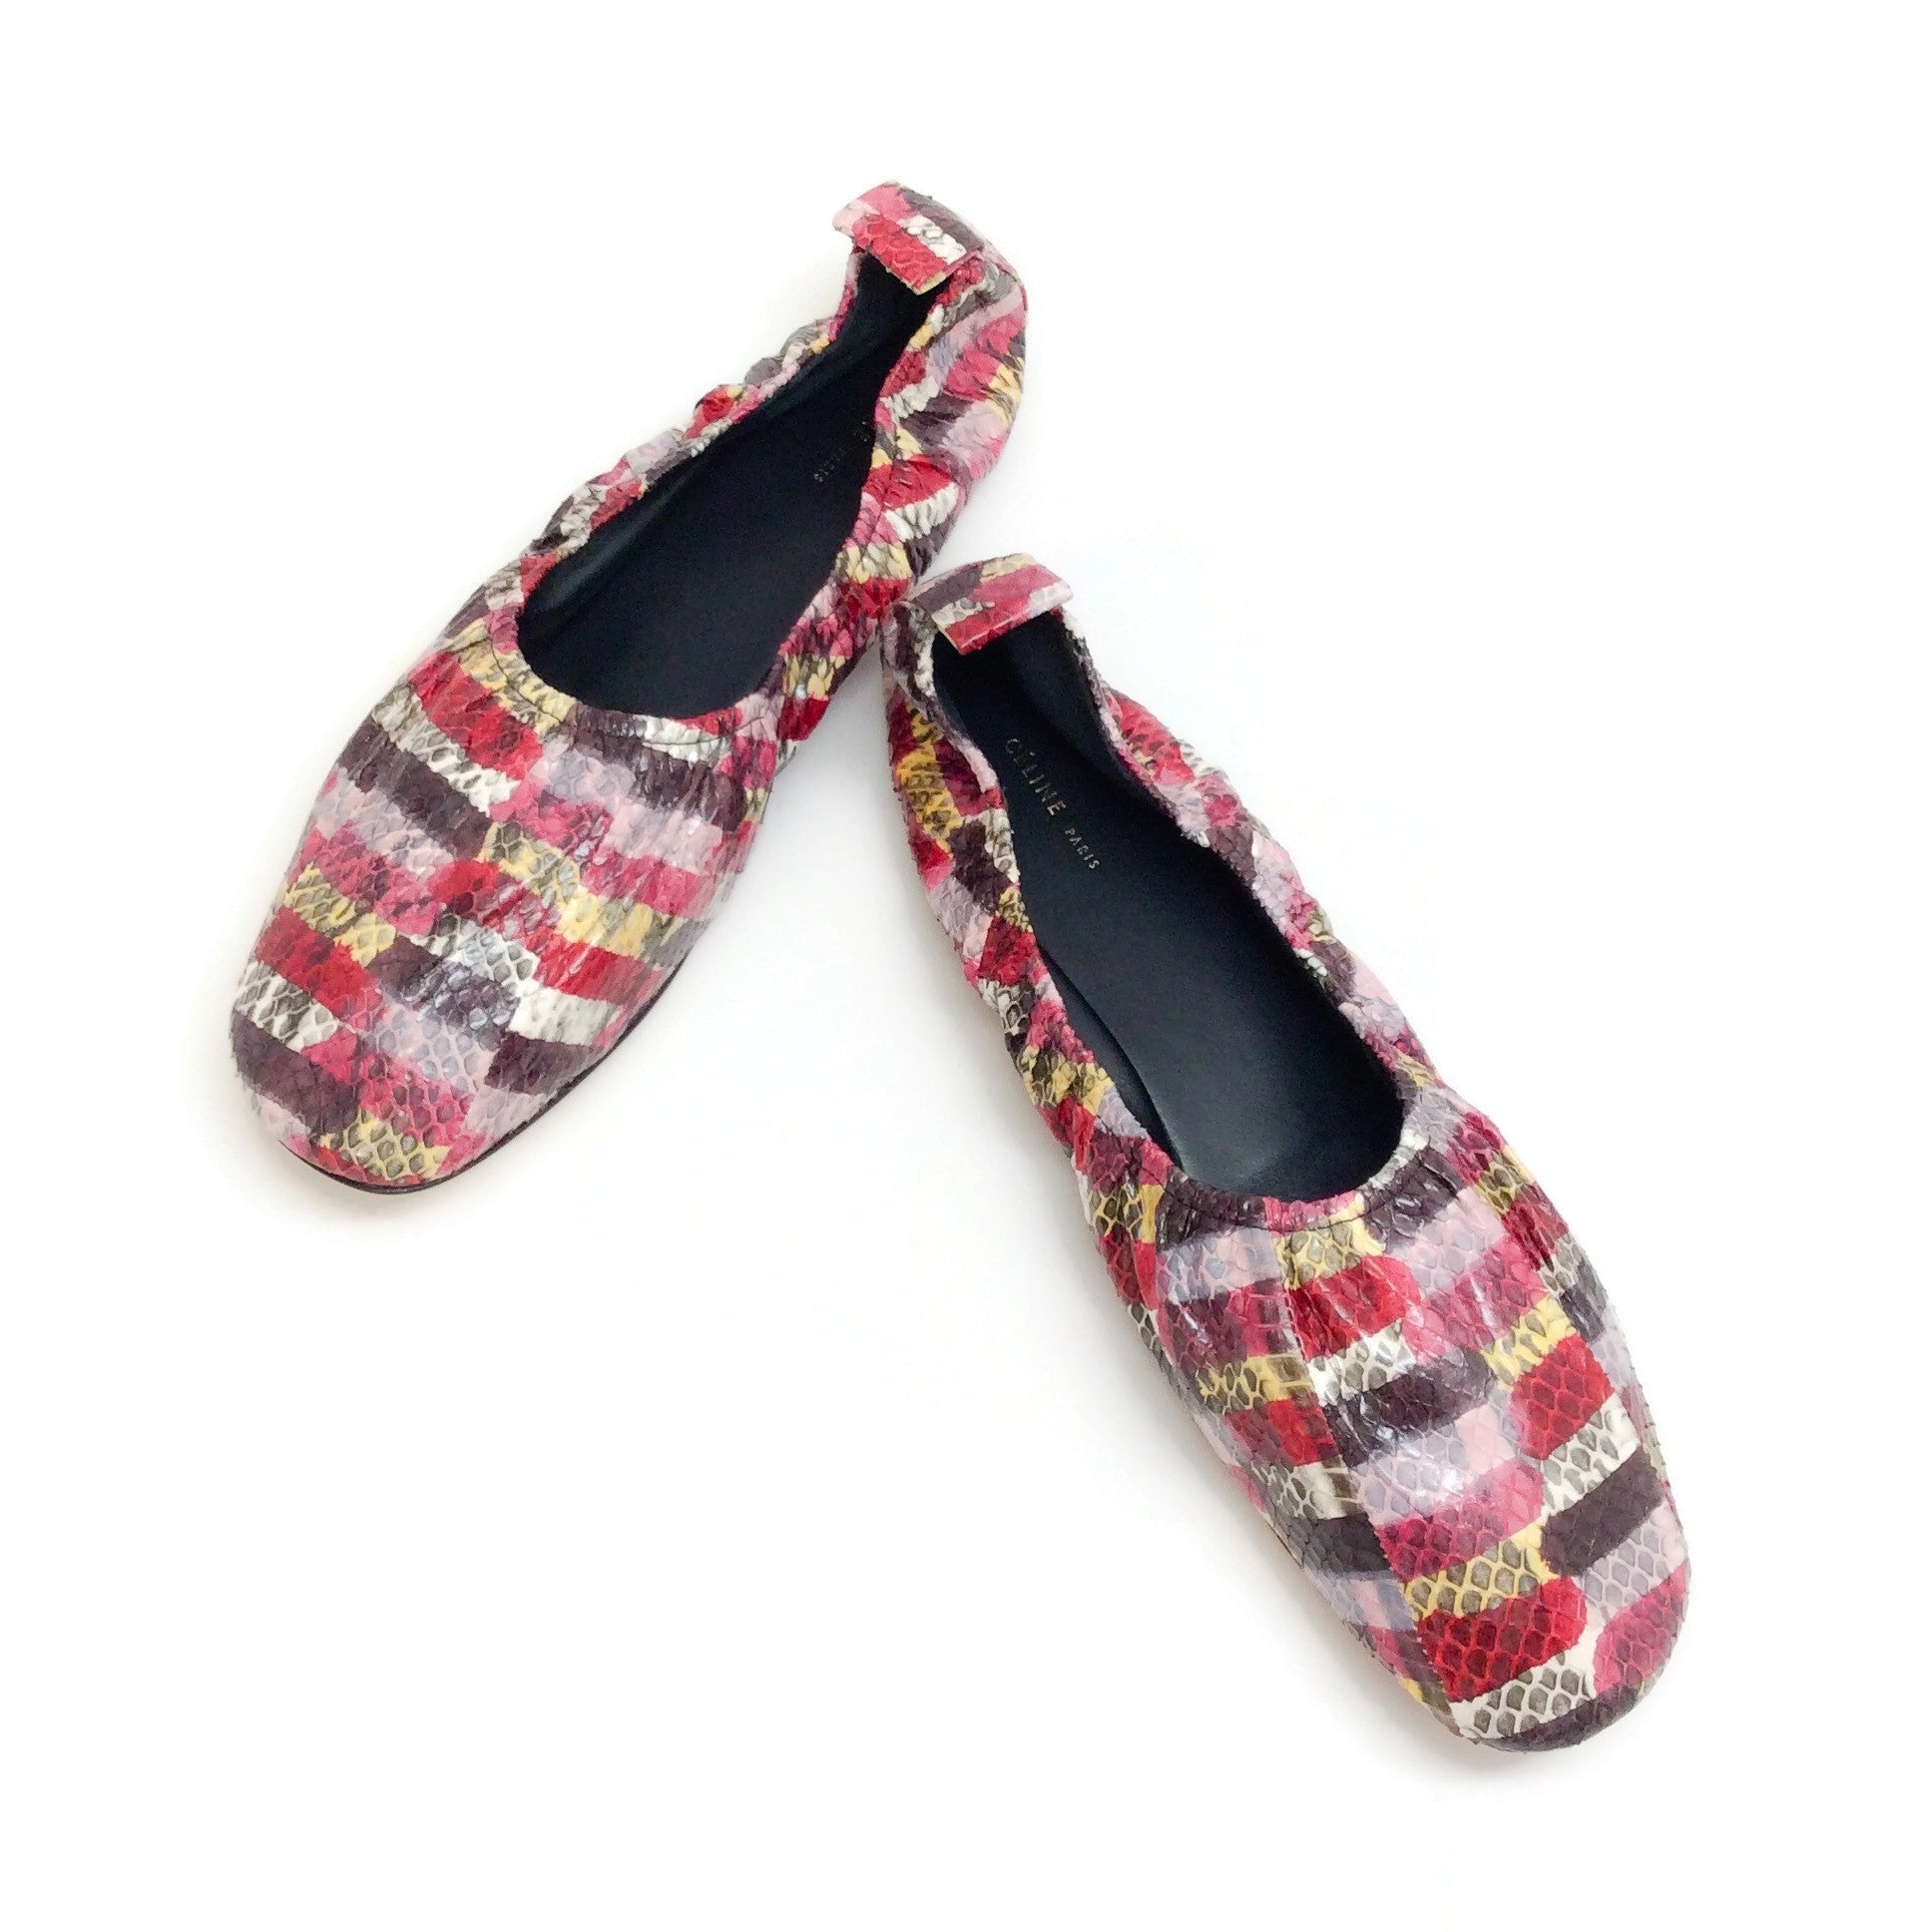 Céline Multicolor Watersnake Soft Ballerina Flats